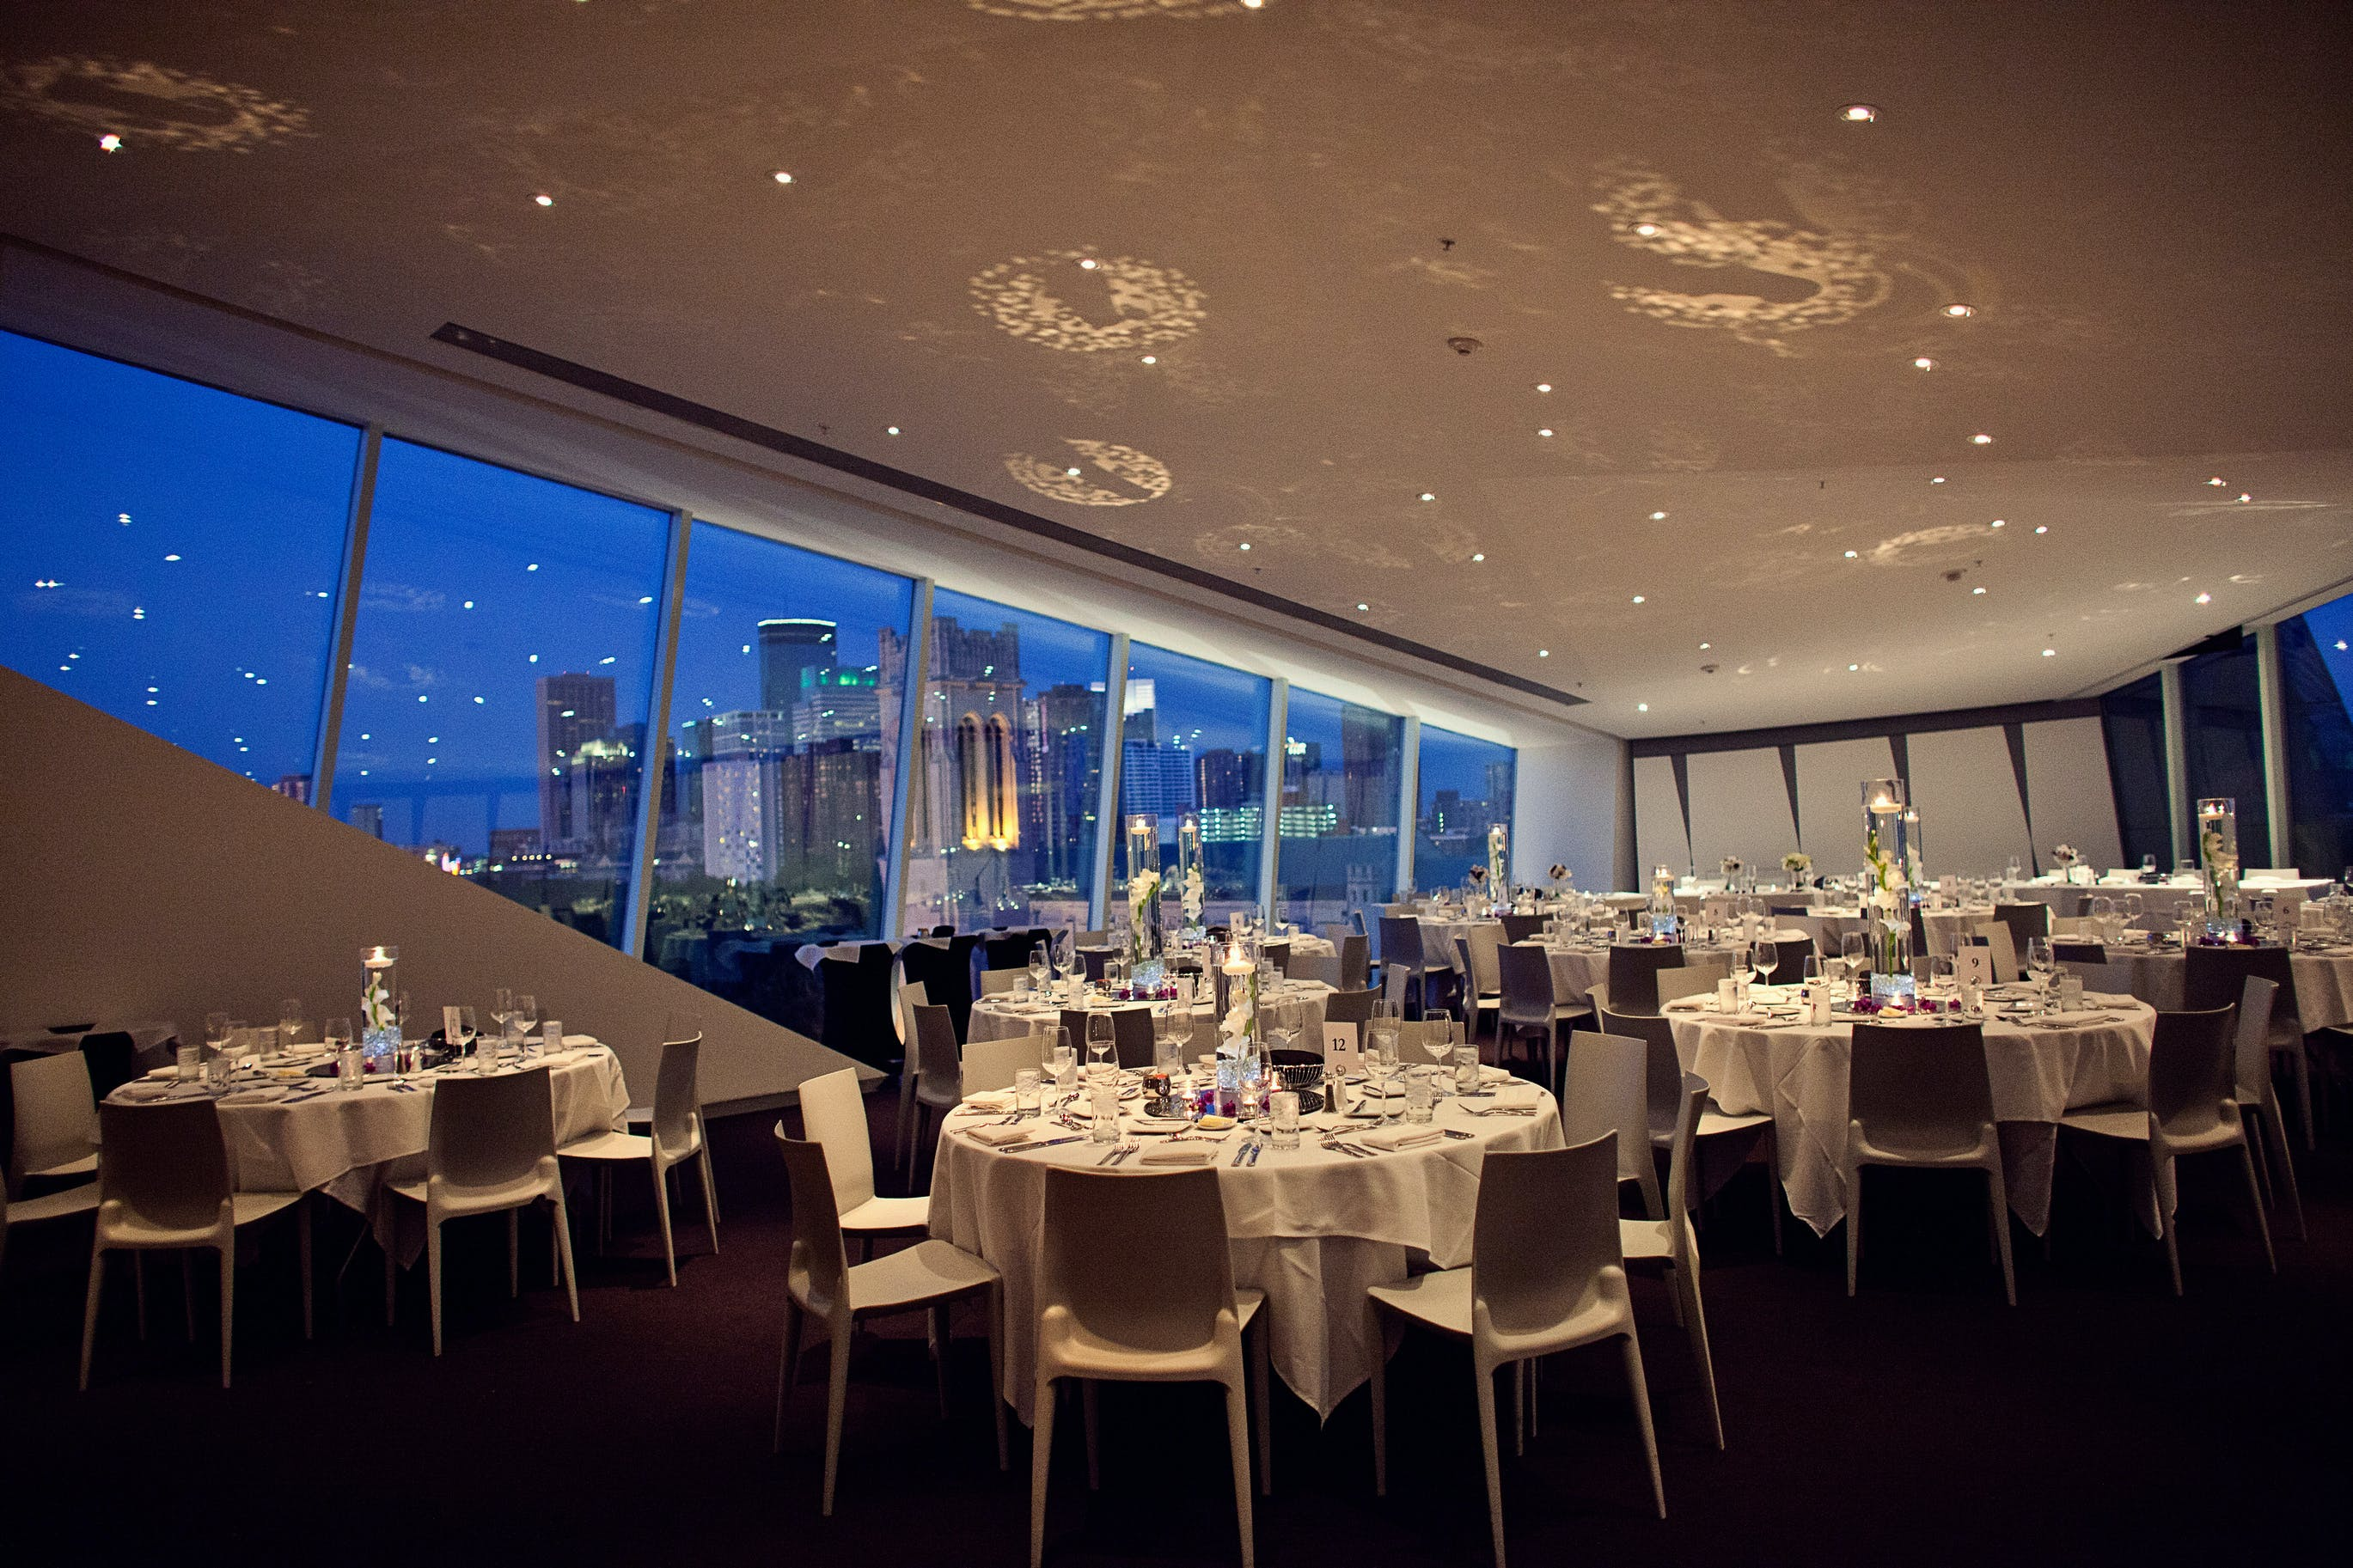 Skyline Room set for evening dinner with Downtown view at dusk